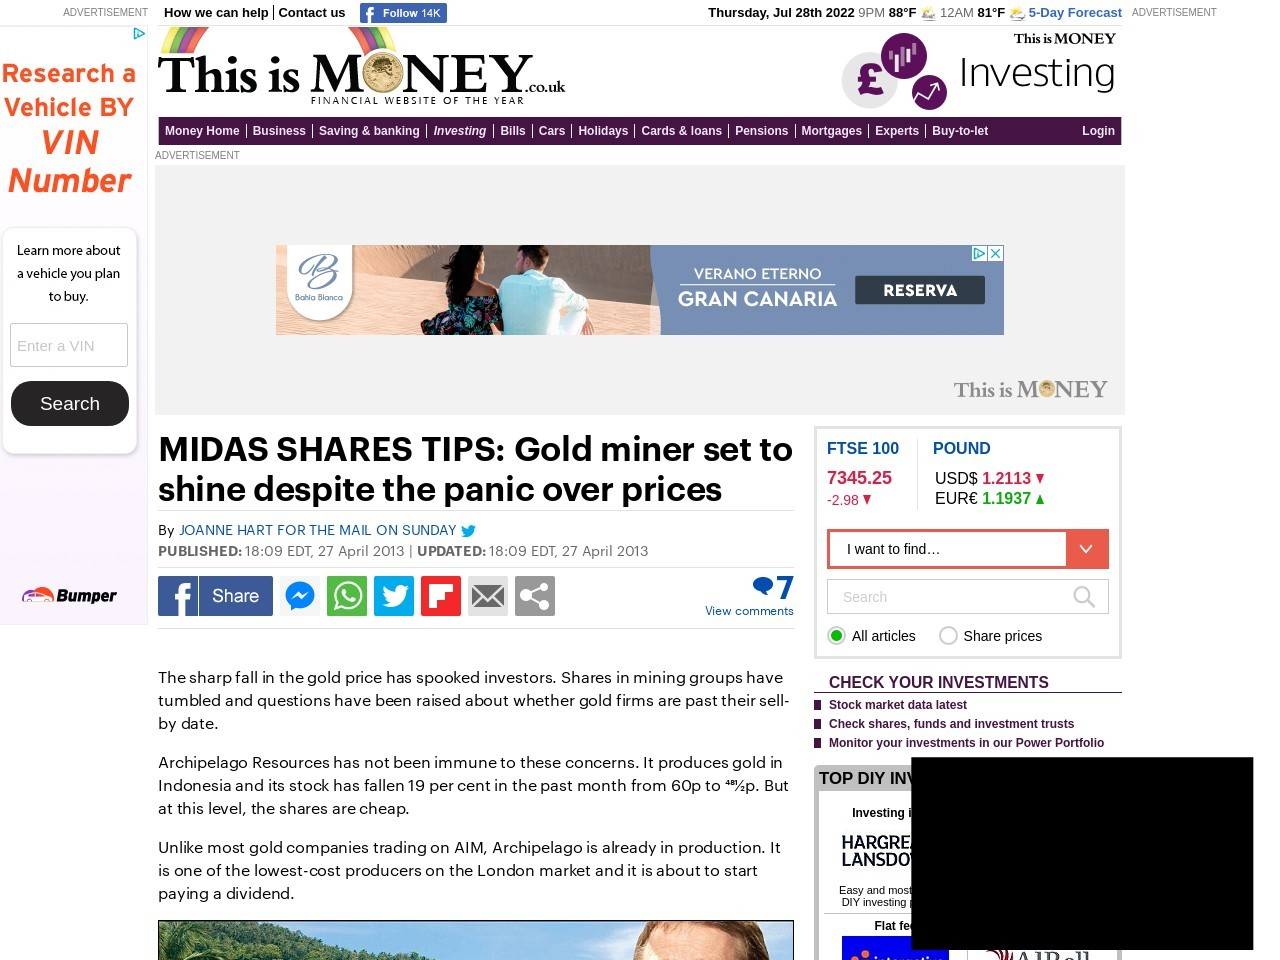 MIDAS SHARES TIPS: Gold miner set to shine despite the panic over prices